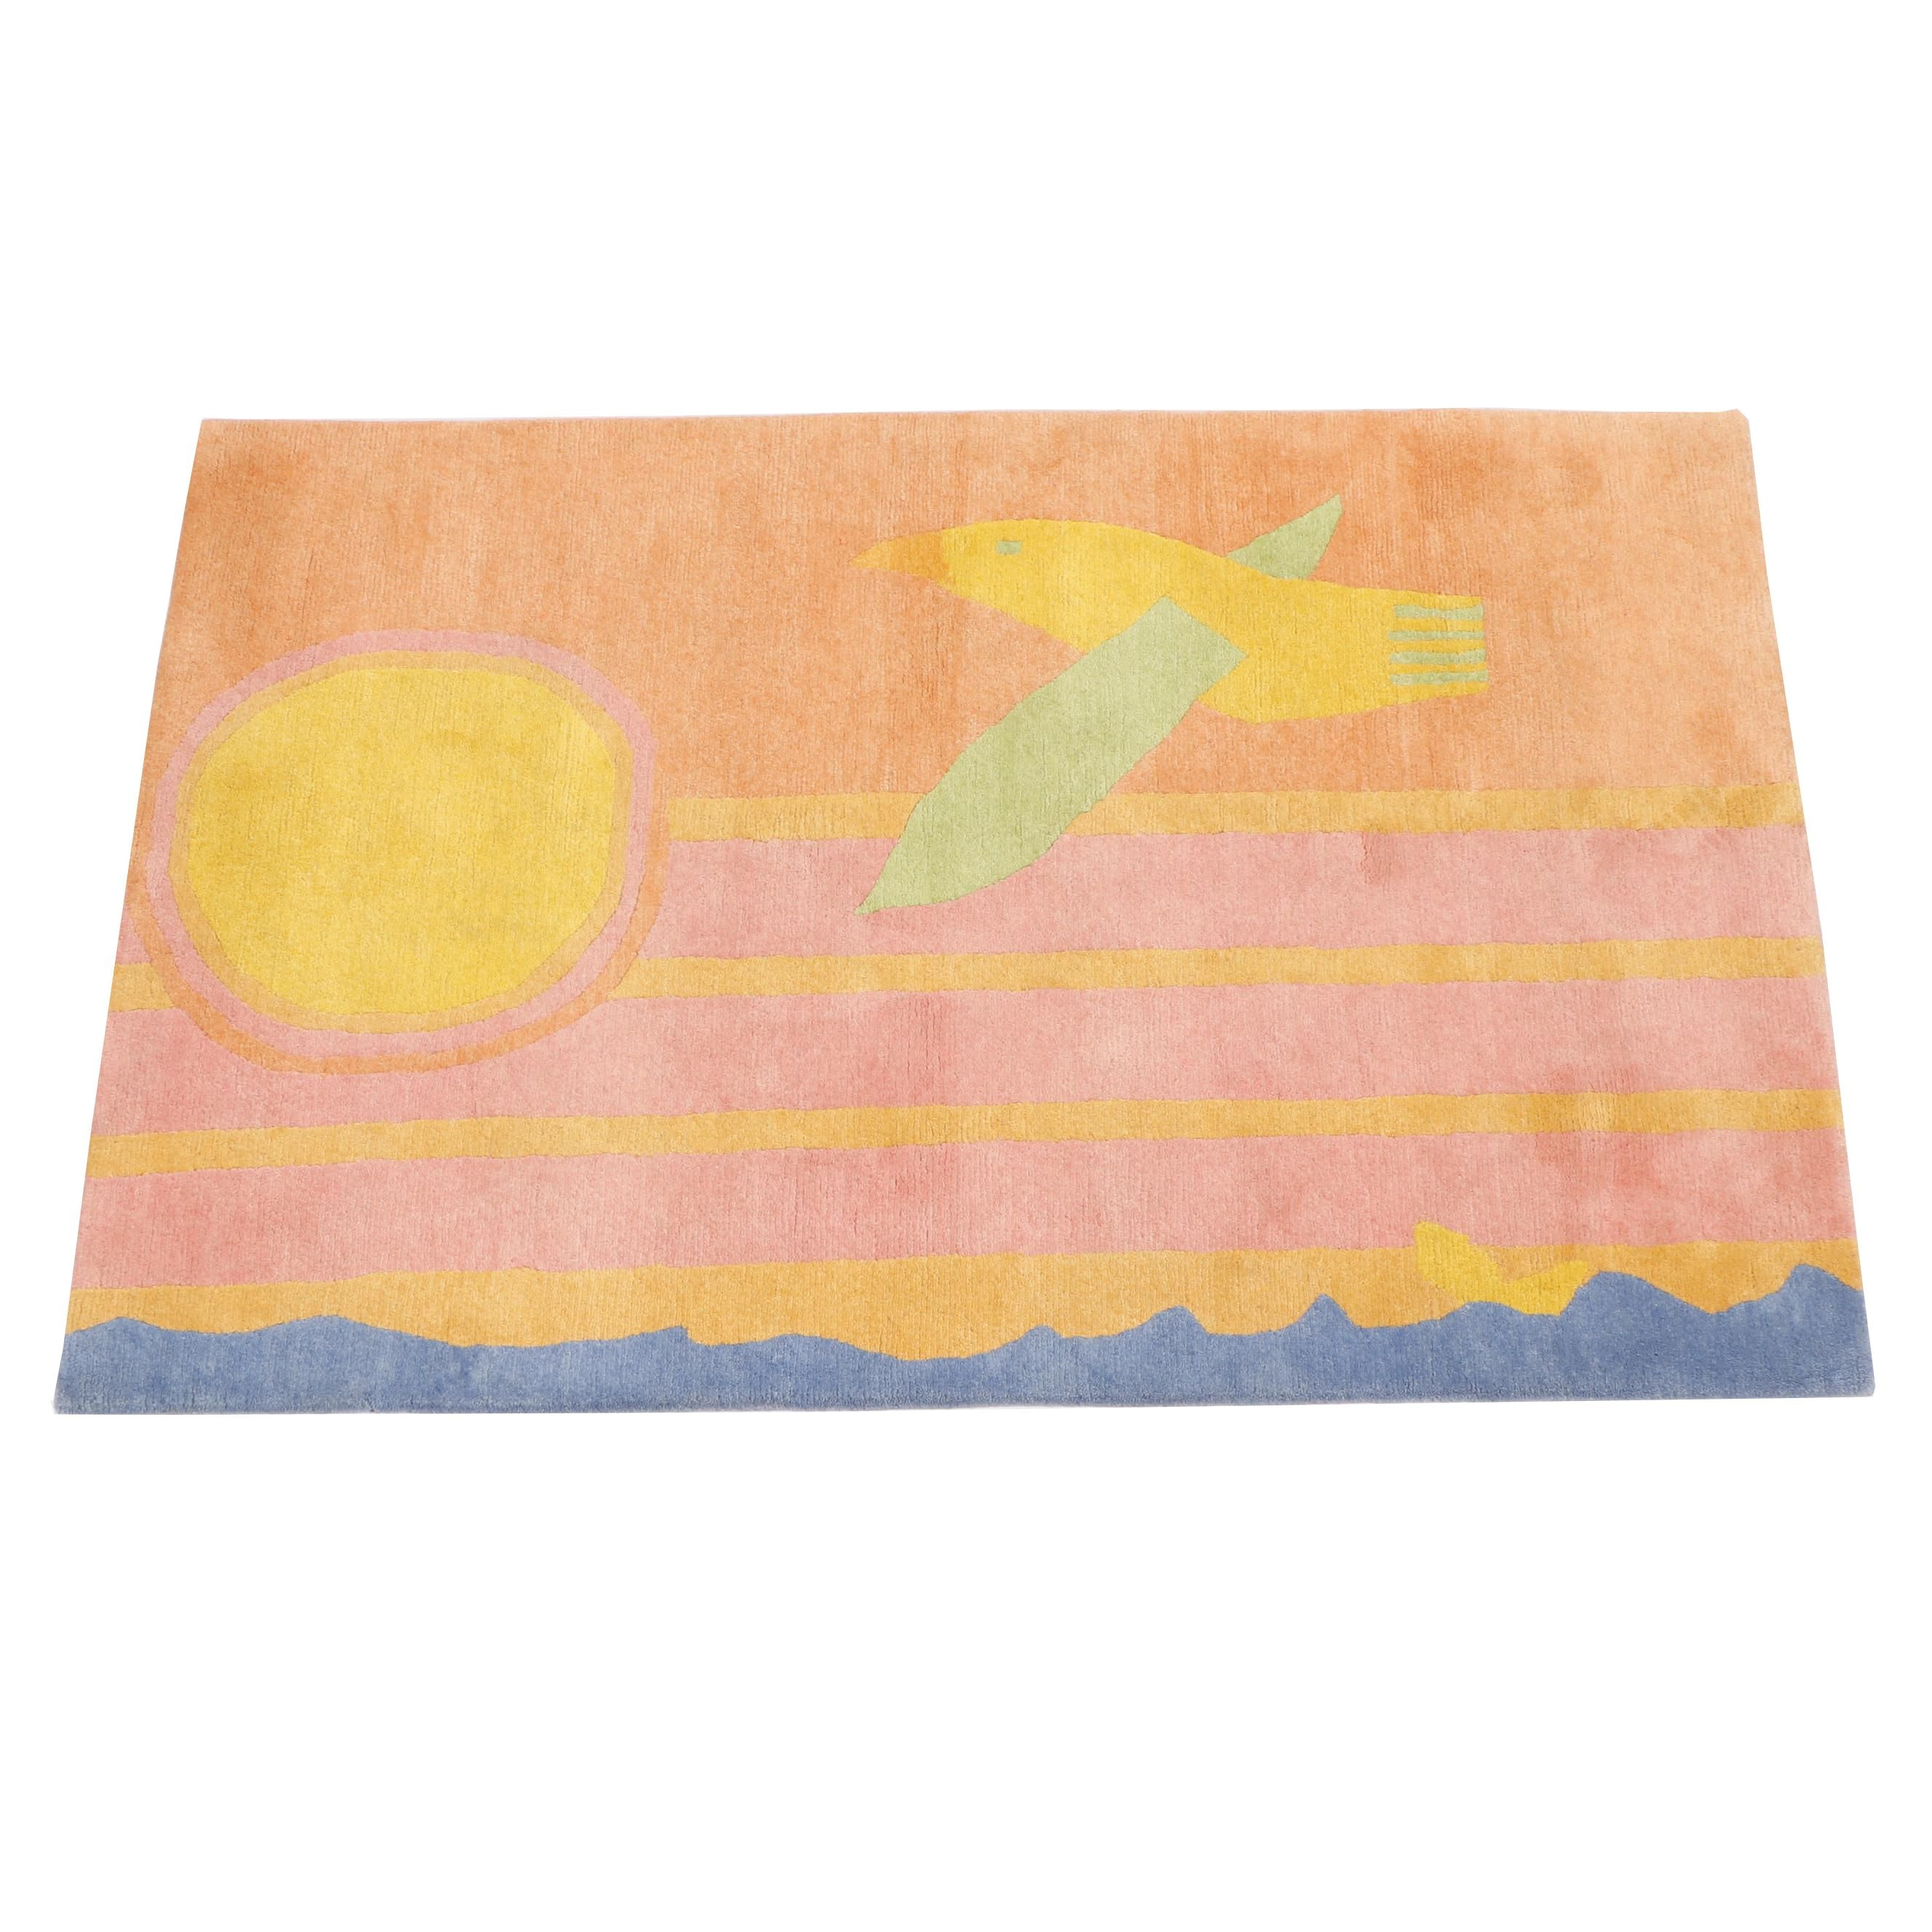 Hand-Knotted Nepalese Pictorial Wool Rug from Oscar Isberian